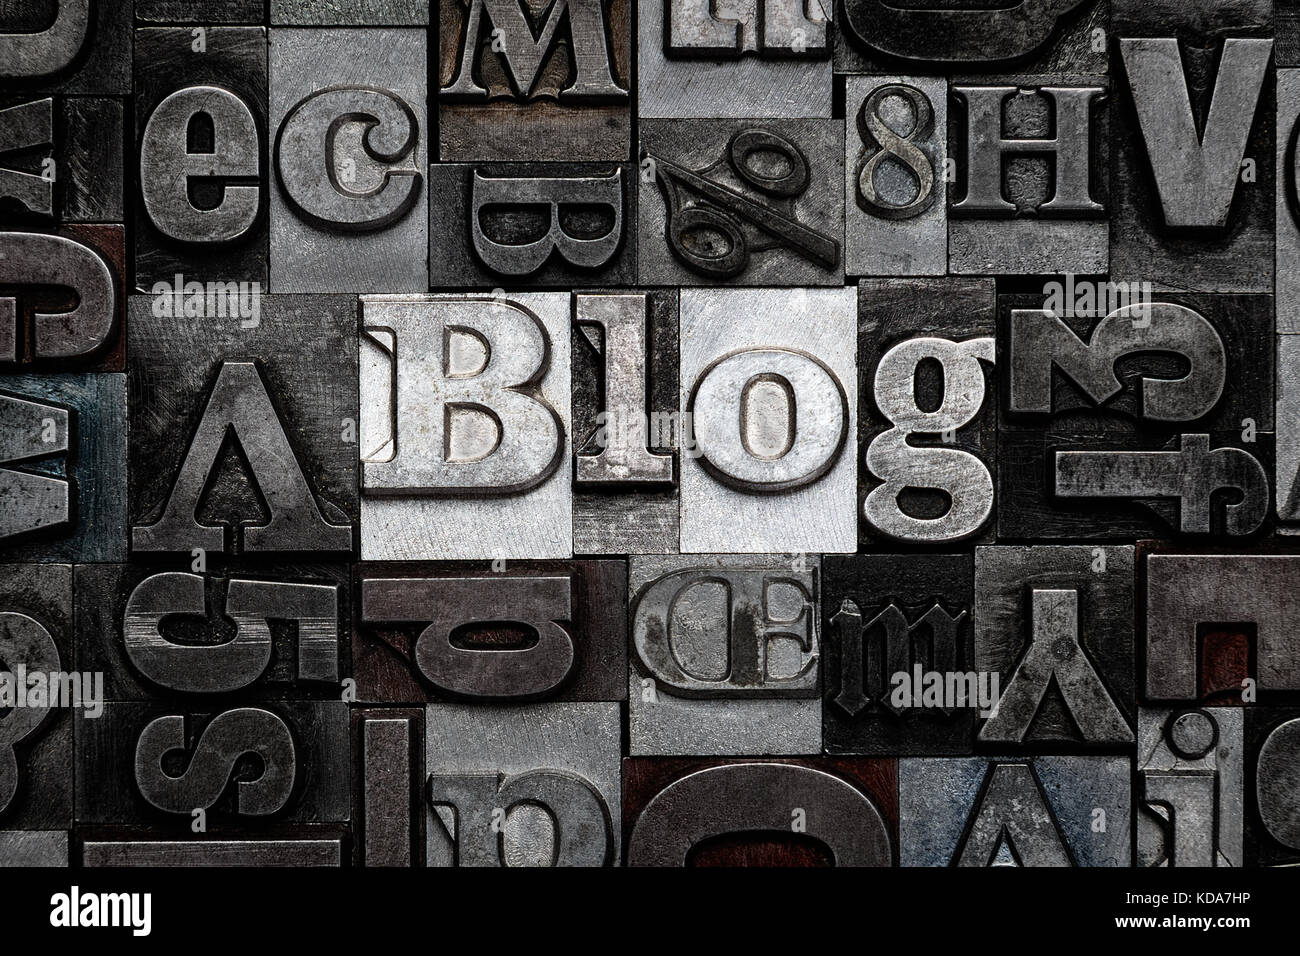 The word Blog made from old metal letterpress letters - Stock Image